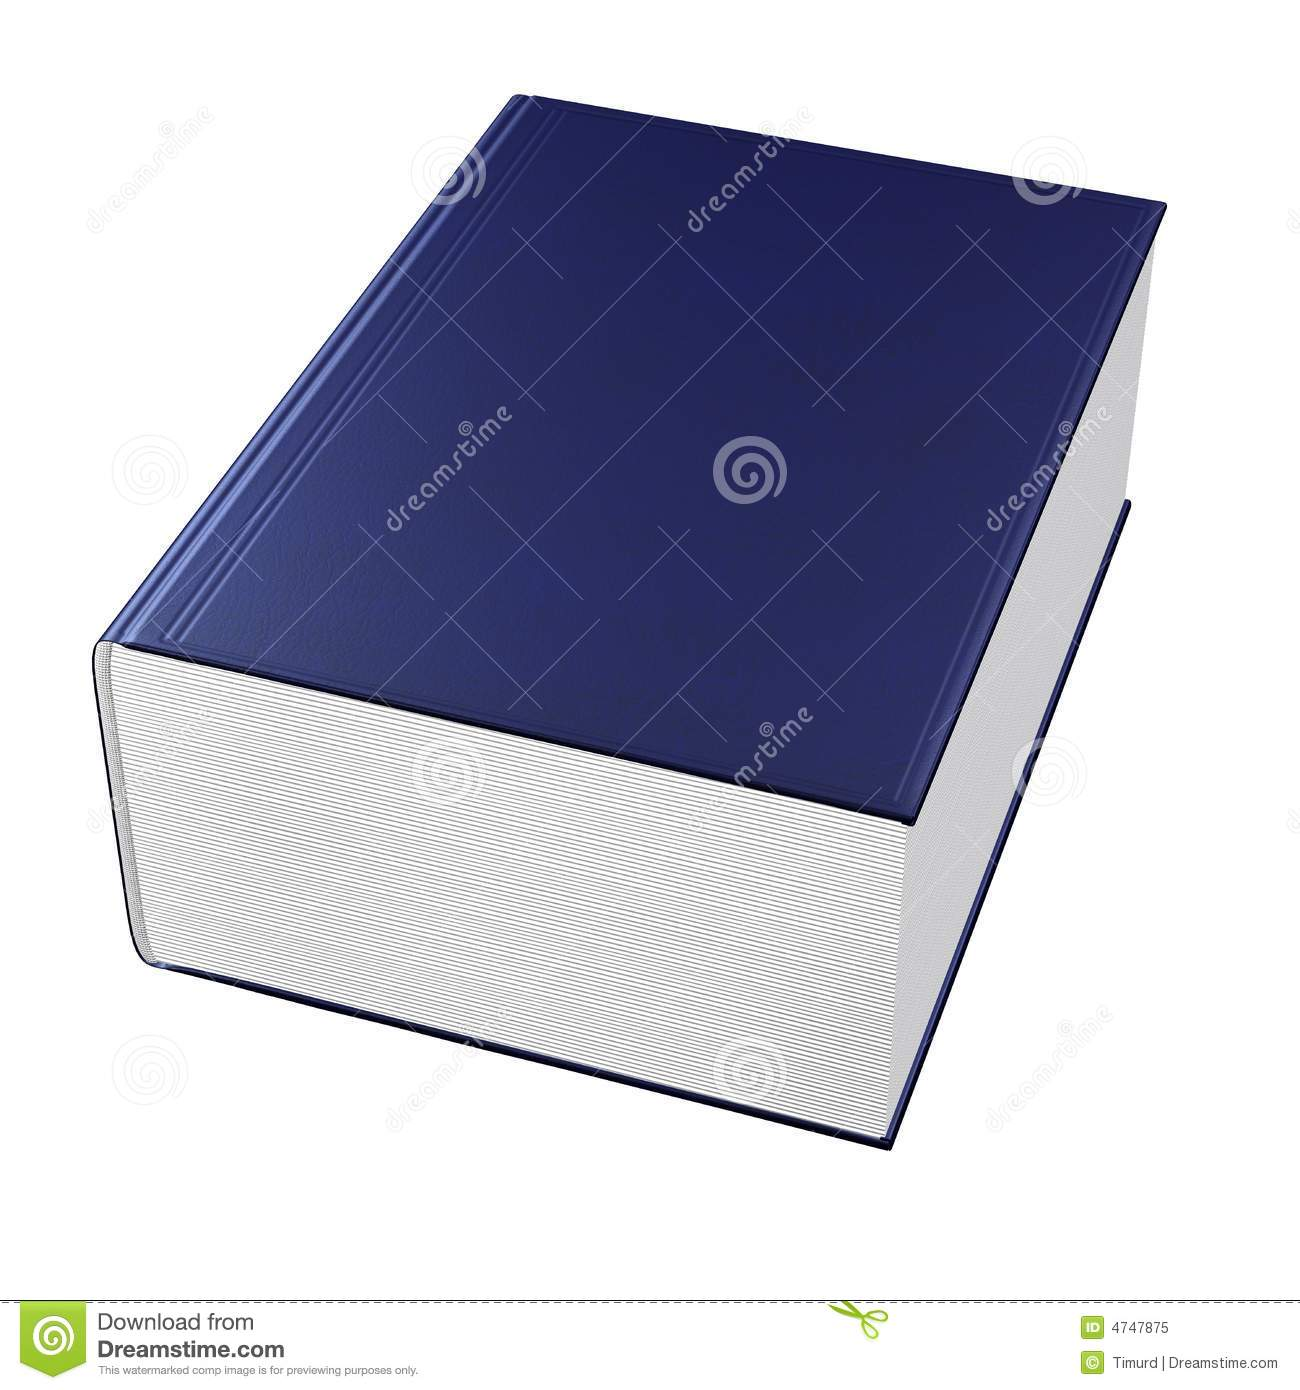 Big Book Royalty Free Stock Photo - Image: 4747875